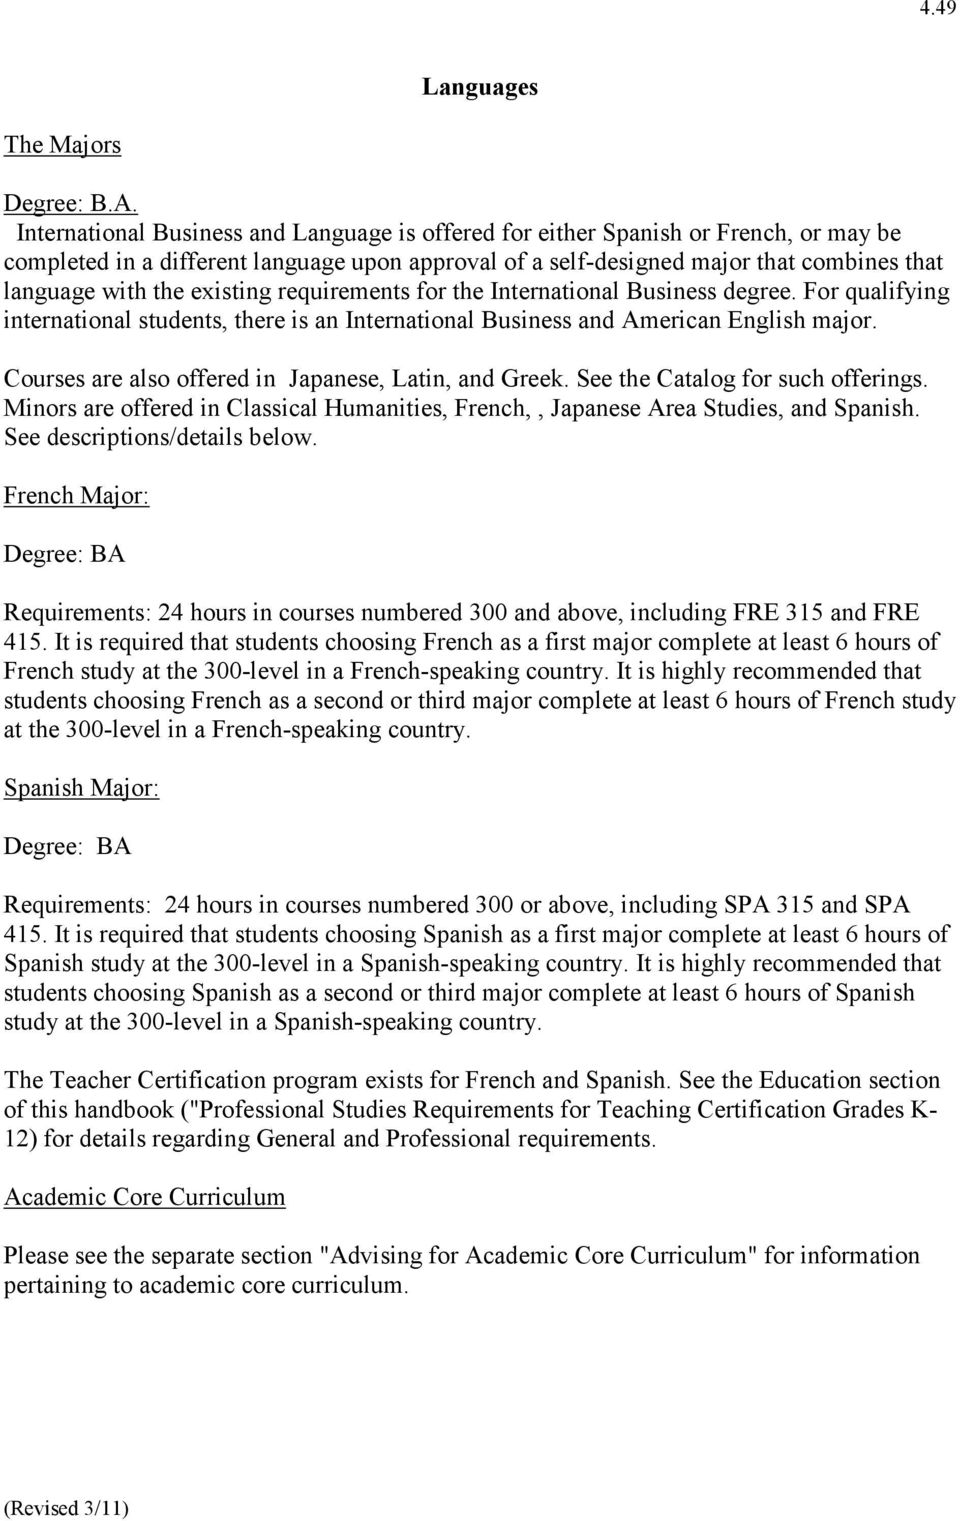 existing requirements for the International Business degree. For qualifying international students, there is an International Business and American English major.